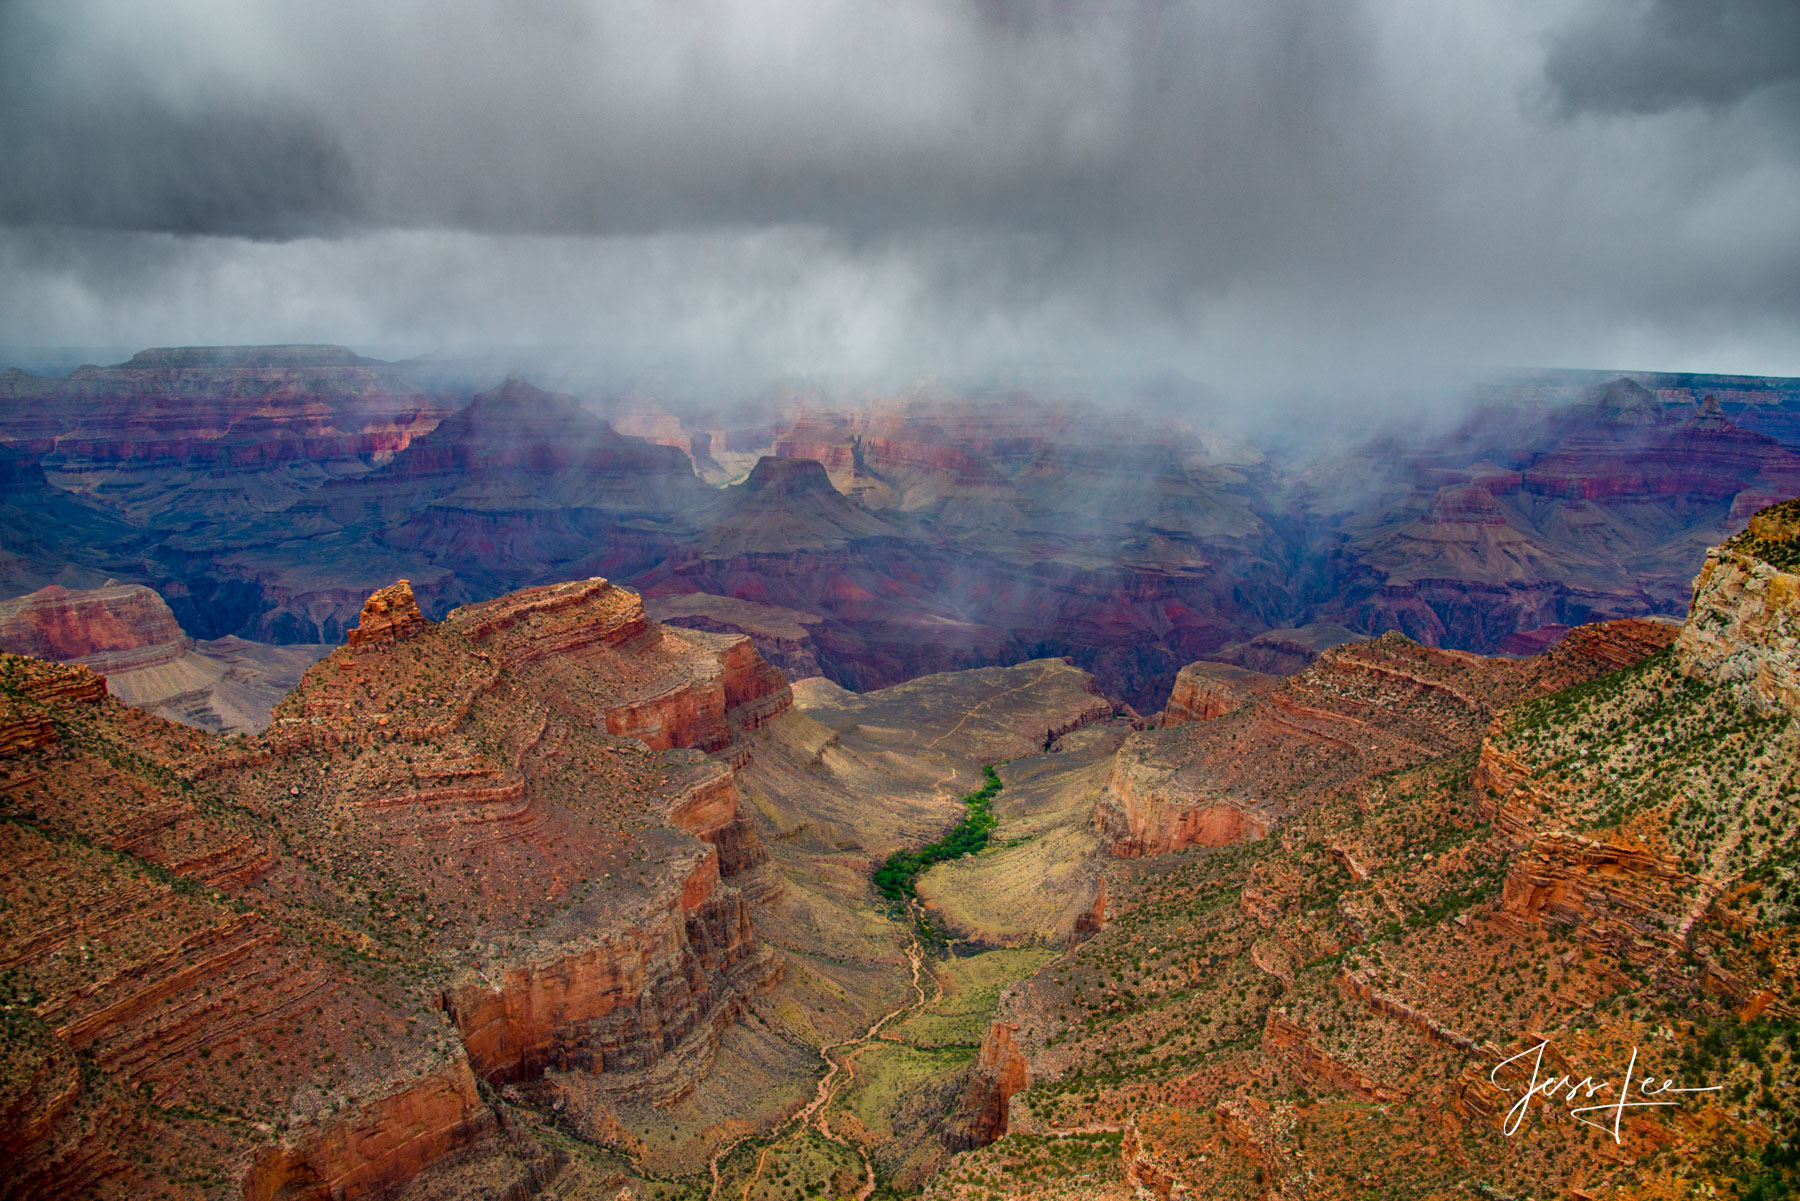 Ominous storm clouds full of rain rolling in over the Grand Canyon.